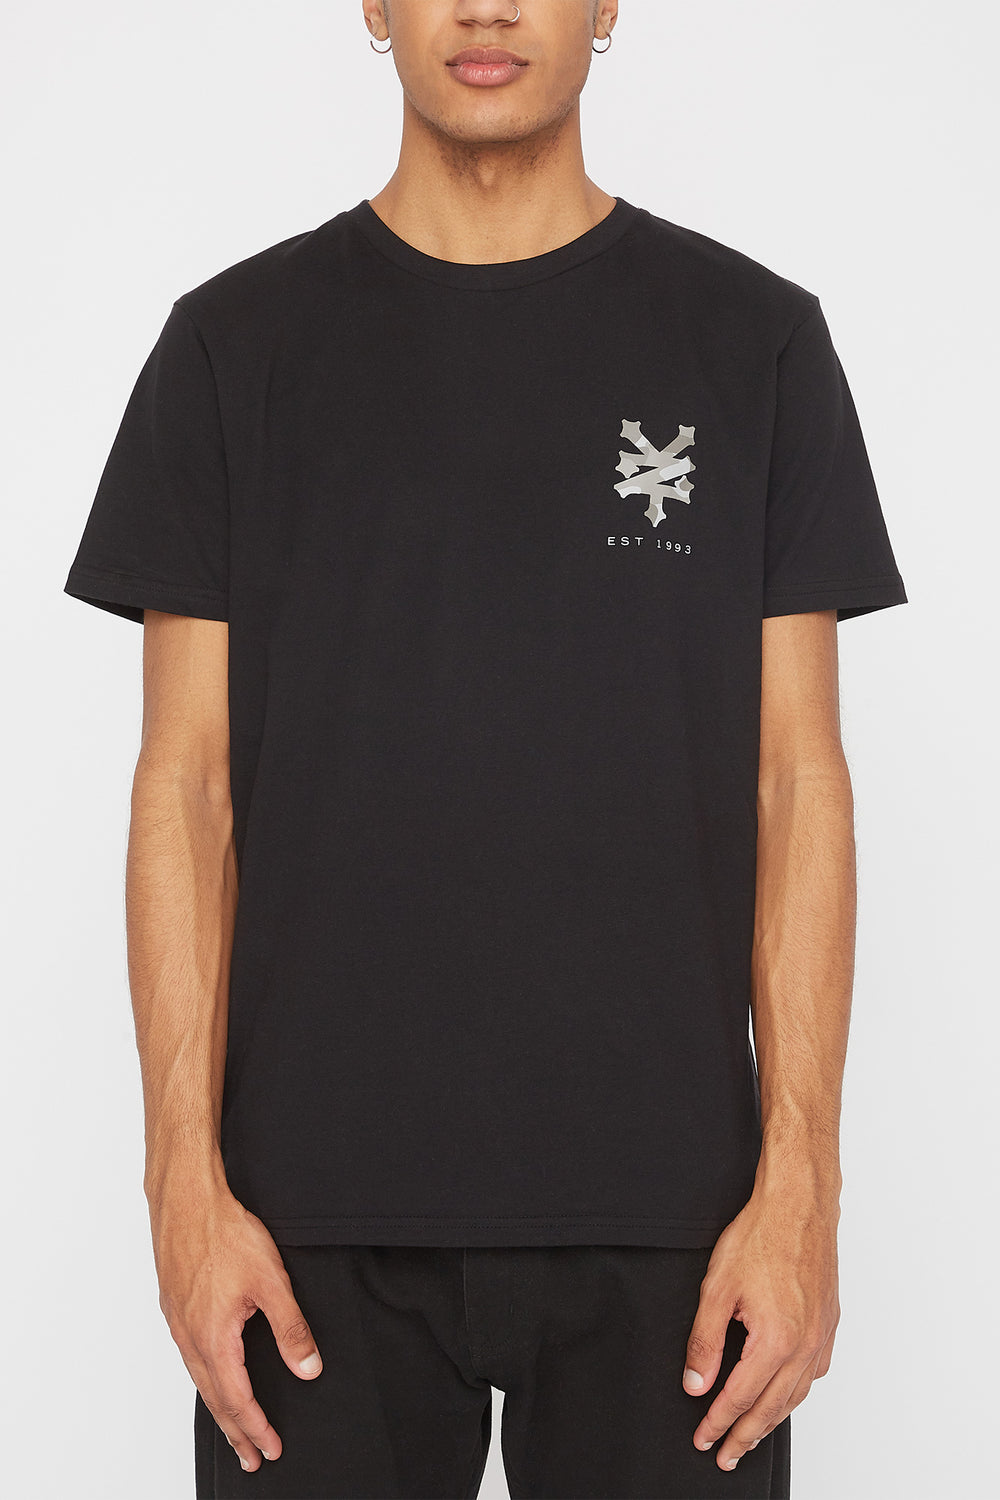 Zoo York Mens Camo Fill Logo T-Shirt Black